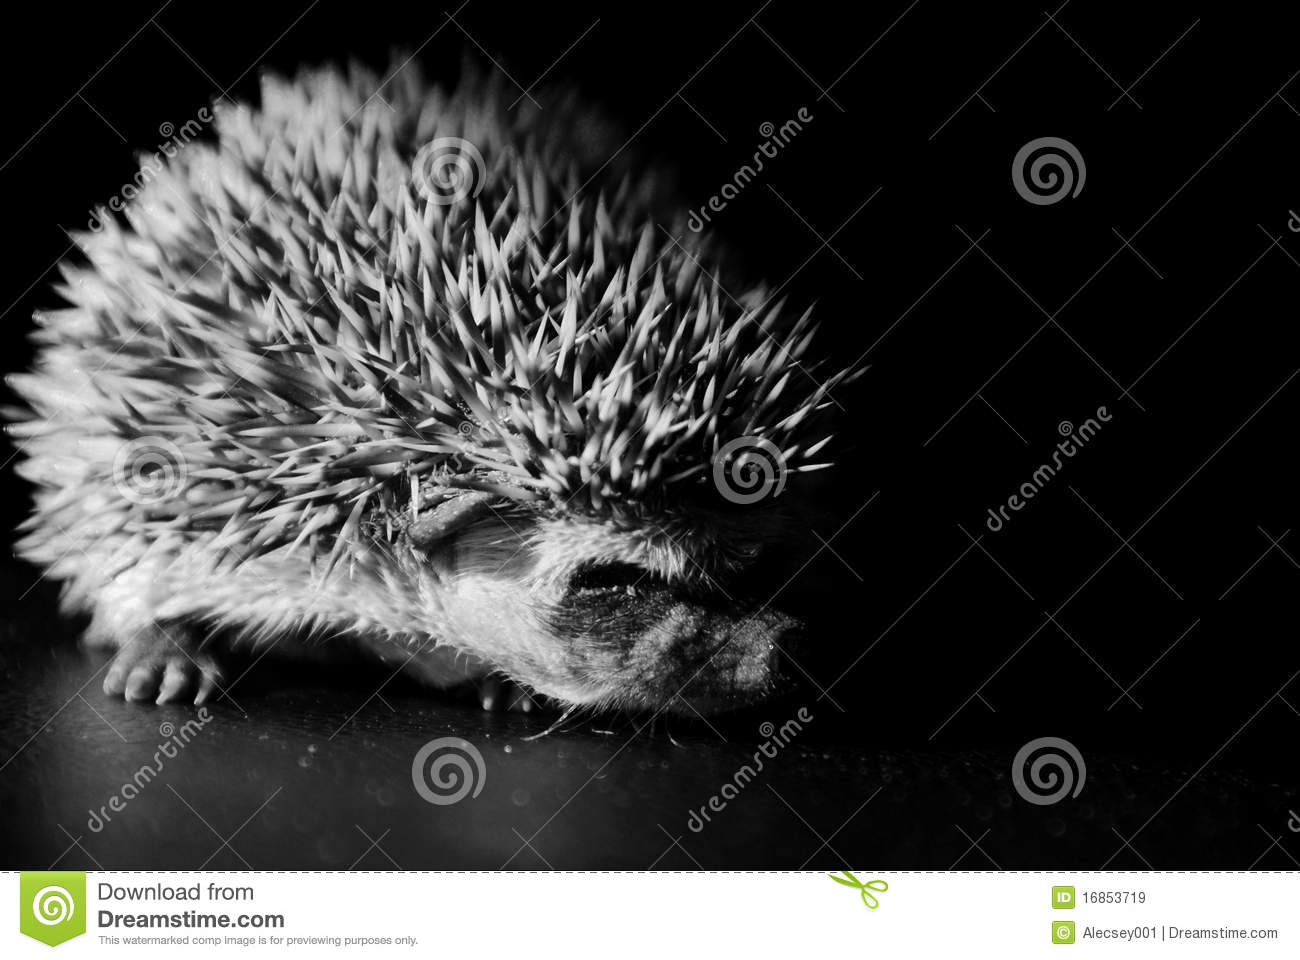 Baby Hedgehog In Black And White Stock Image - Image: 16853719 Mammals Clipart Black And White